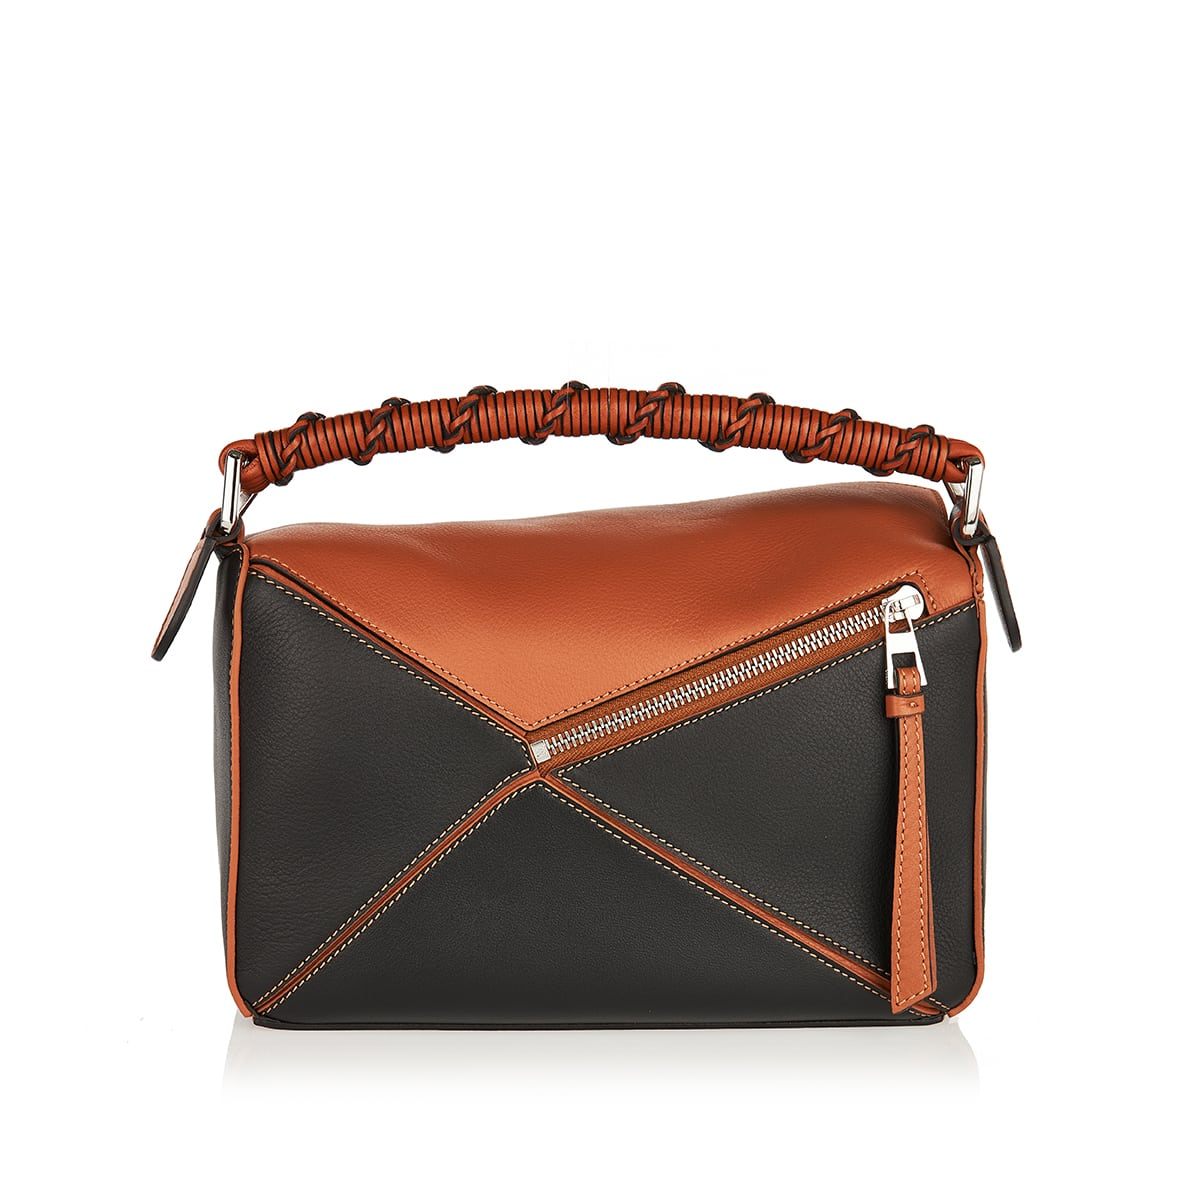 Puzzle Edge small leather bag